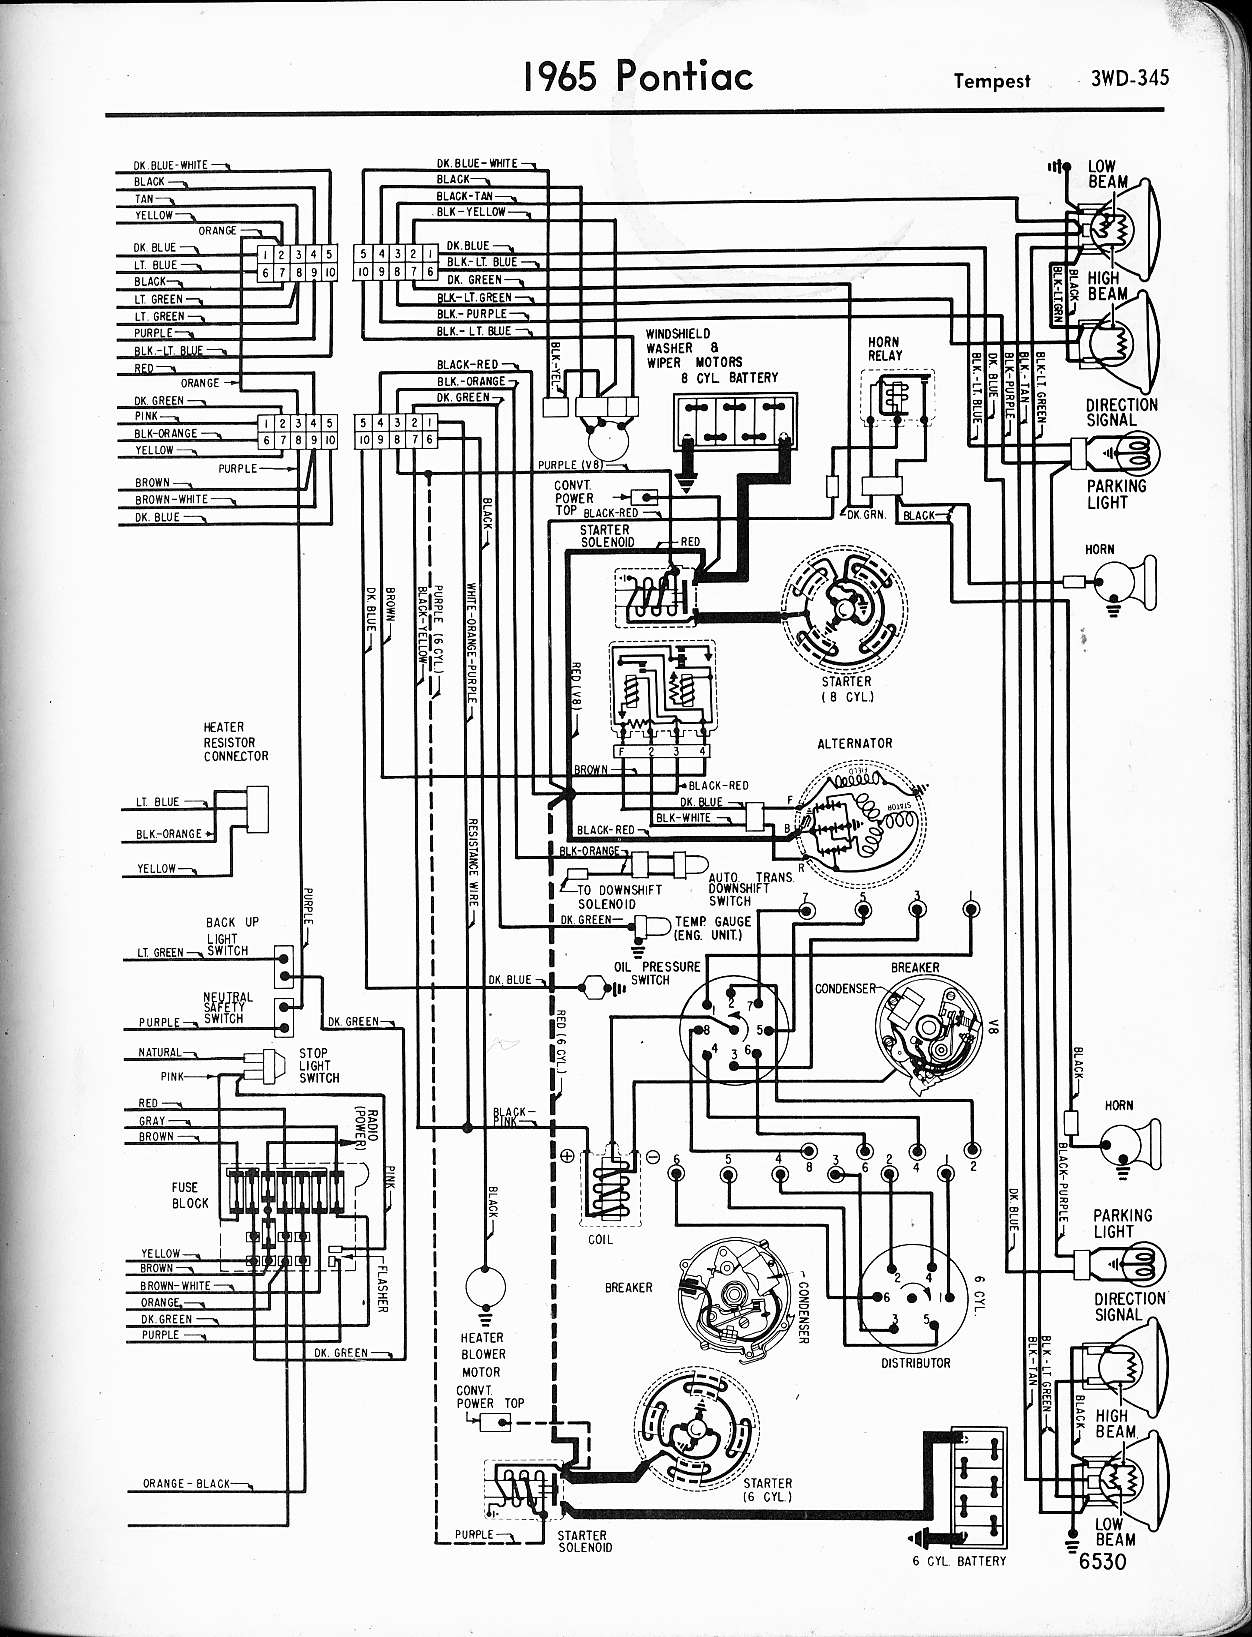 1967 Pontiac Fuse Box Diagram Worksheet And Wiring G6 Trunk 1970 Gto Another Diagrams U2022 Rh Benpaterson Co Uk